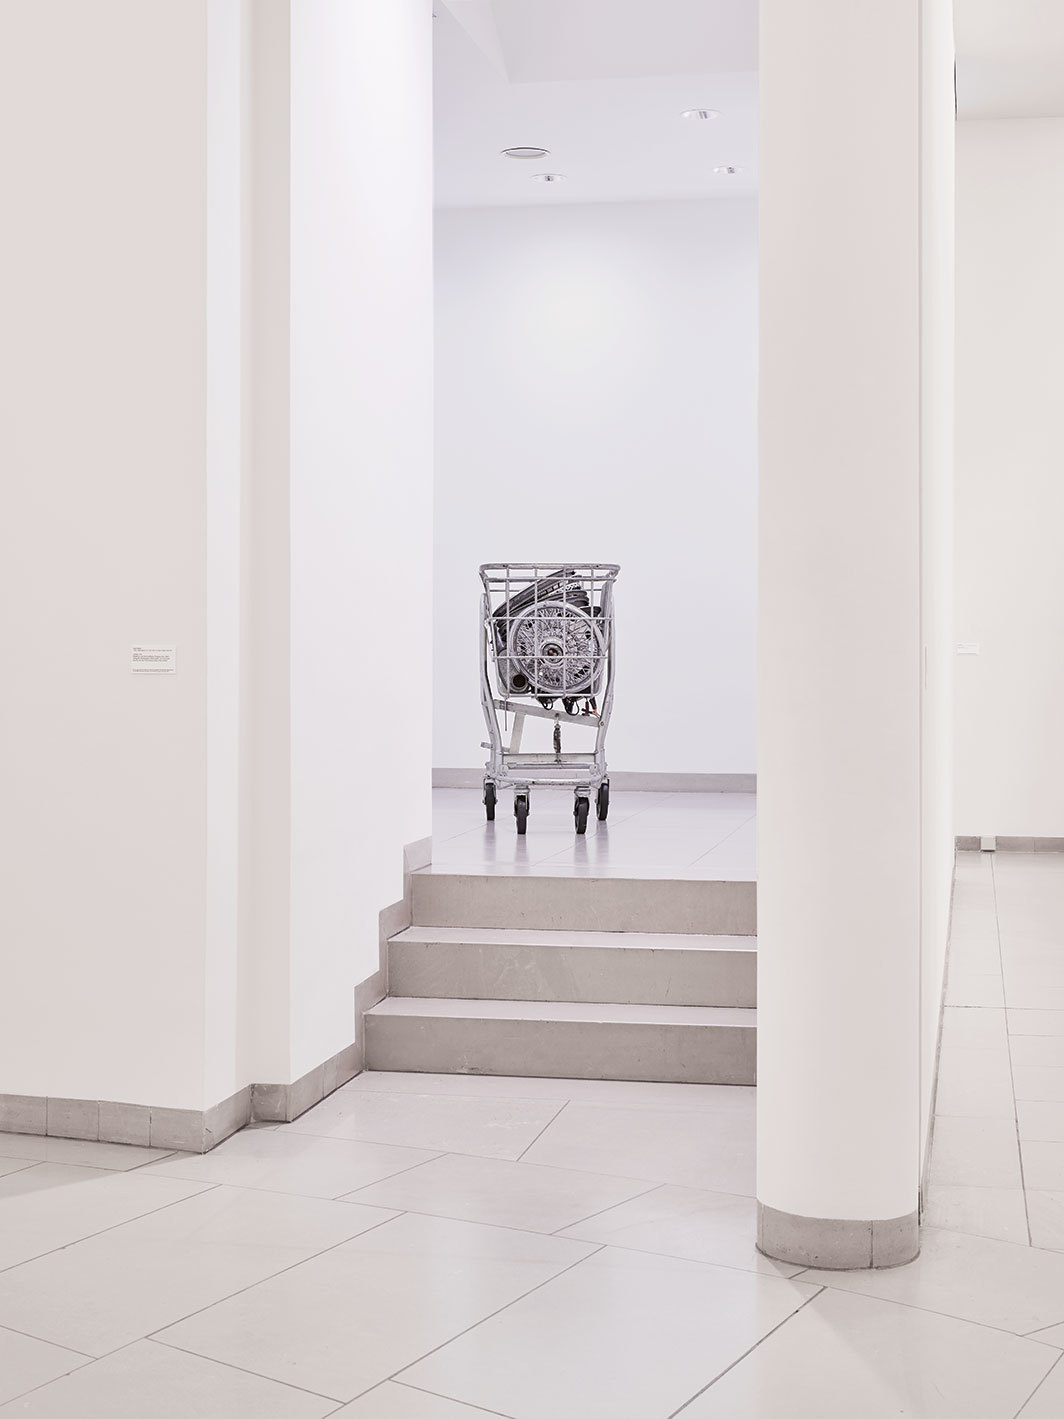 Cady Noland, Cart Full of Action, 1986, metal cart, rims, rear-view mirror, exhaust, engine oil, battery charger, various plastics, oil-based car care products. Installation view, Museum für Moderne Kunst, Frankfurt, 2018. Photo: Fabian Frinzel.